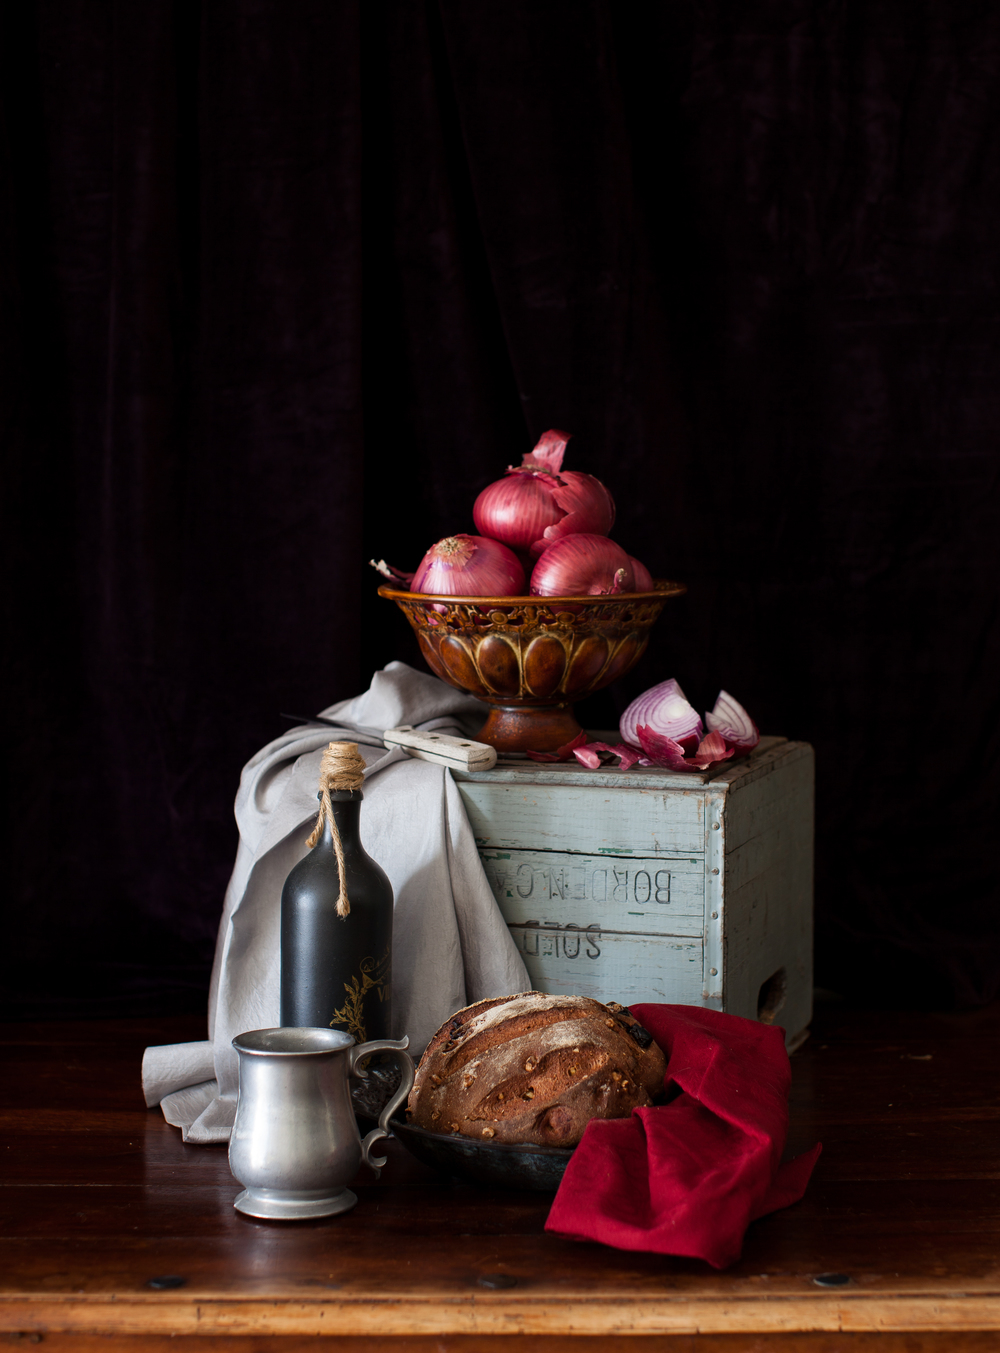 Still Life with Bread & Red Onions 2012